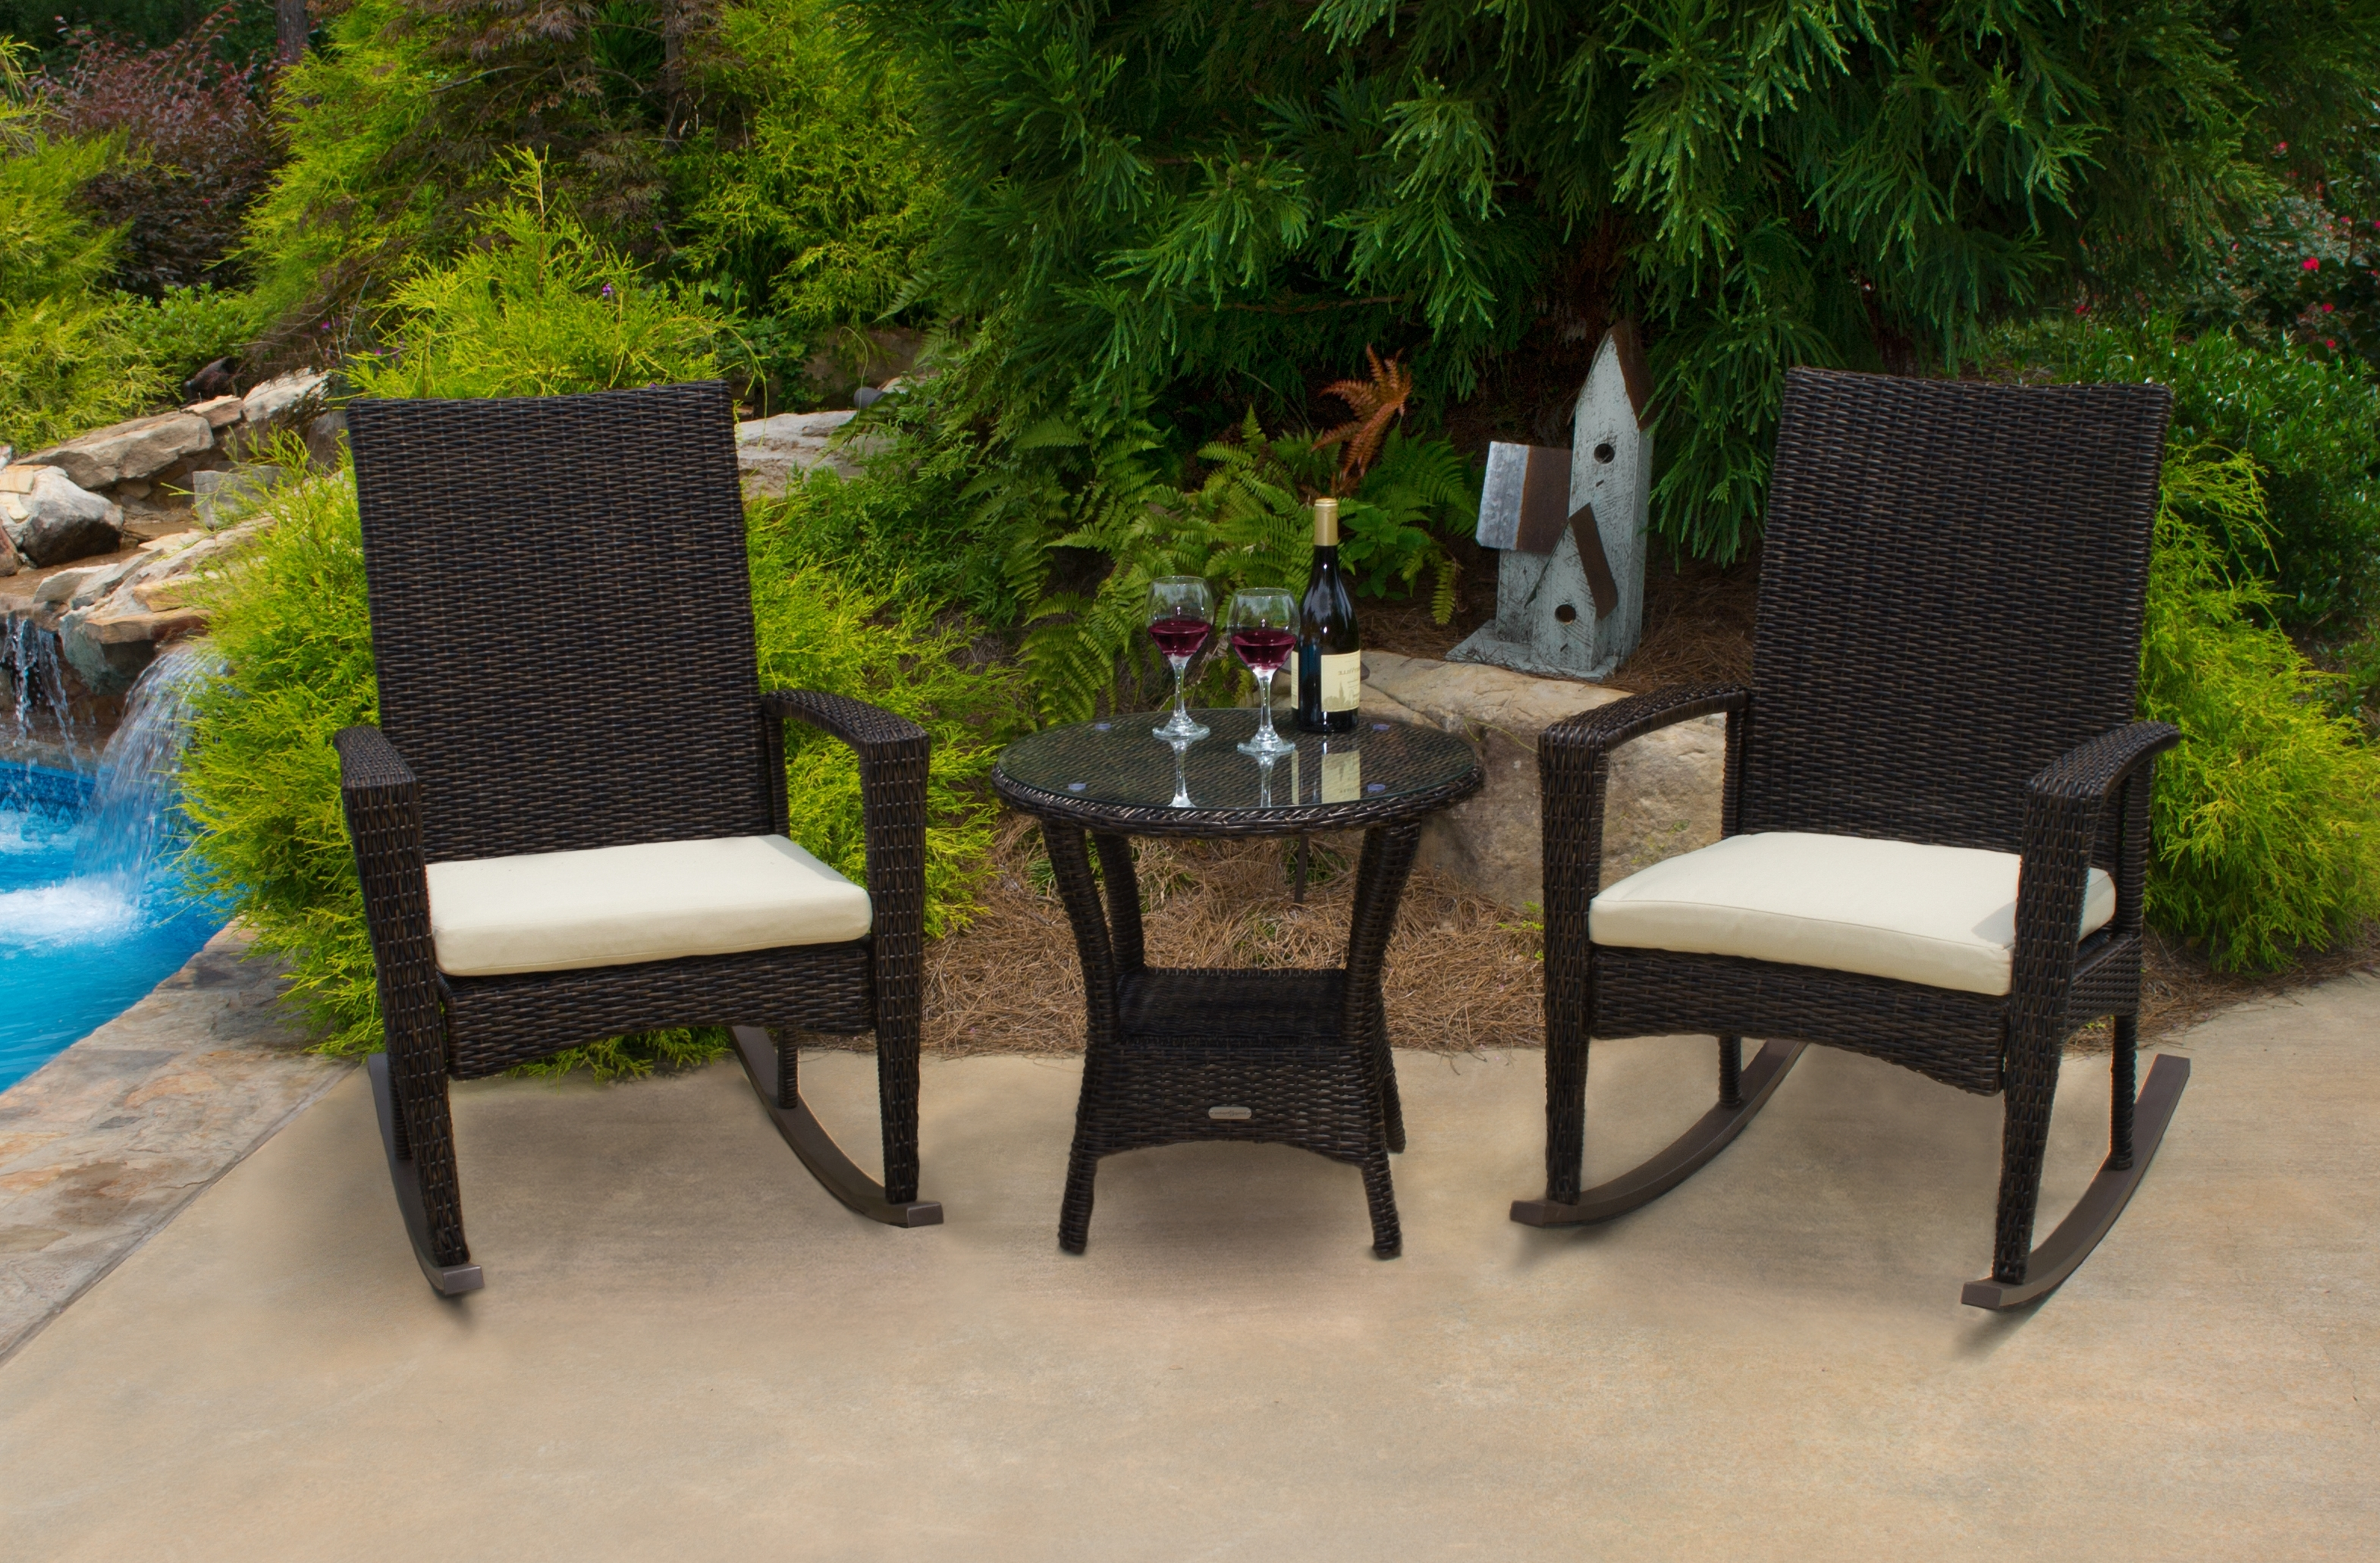 Recent Rocking Chairs – Tortuga Outdoor Of Georgia – Alpharetta In Wicker Rocking Chairs Sets (View 3 of 15)